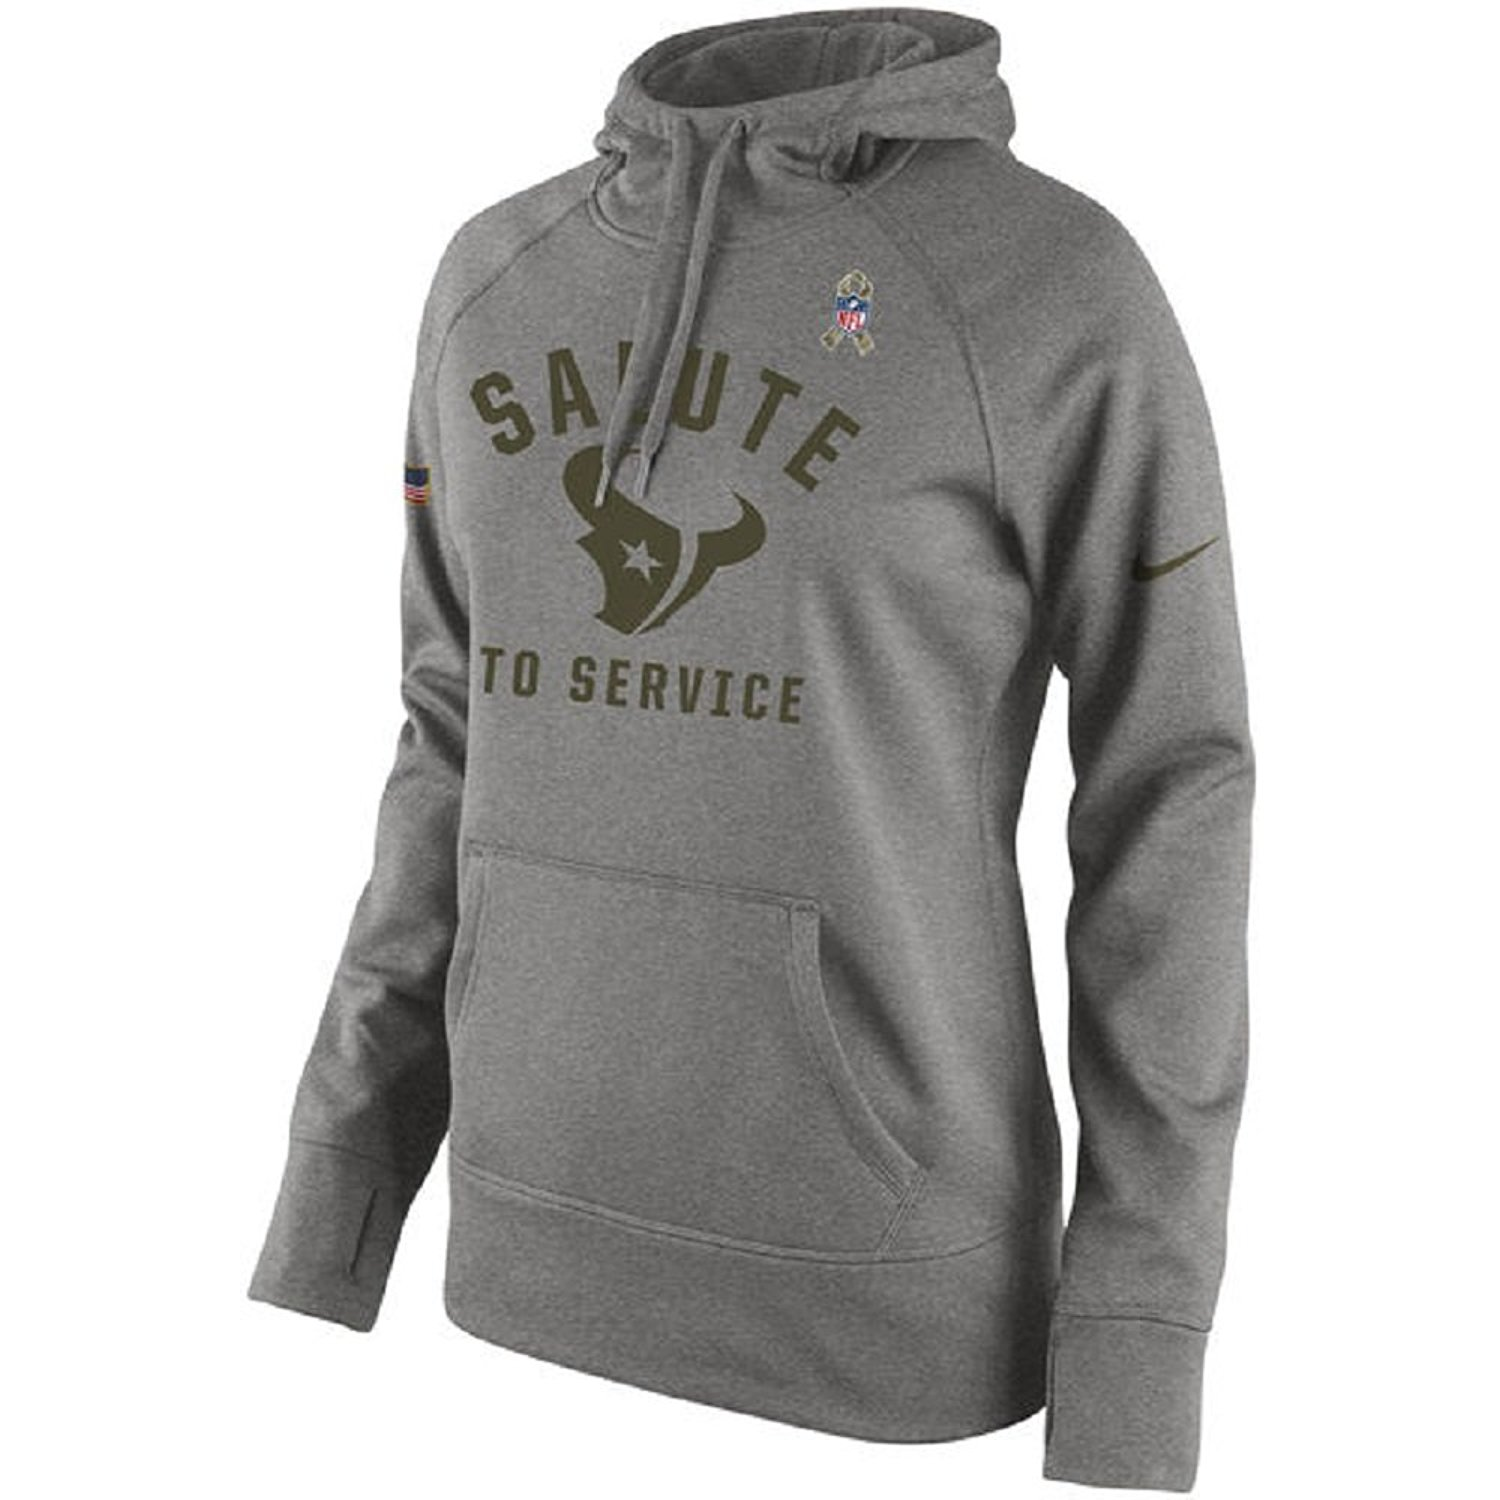 b8cf49480 Get Quotations · Nike Women s Houston Texans Salute to Service Fleece  Pullover Hoodie 826005-063 (Medium)